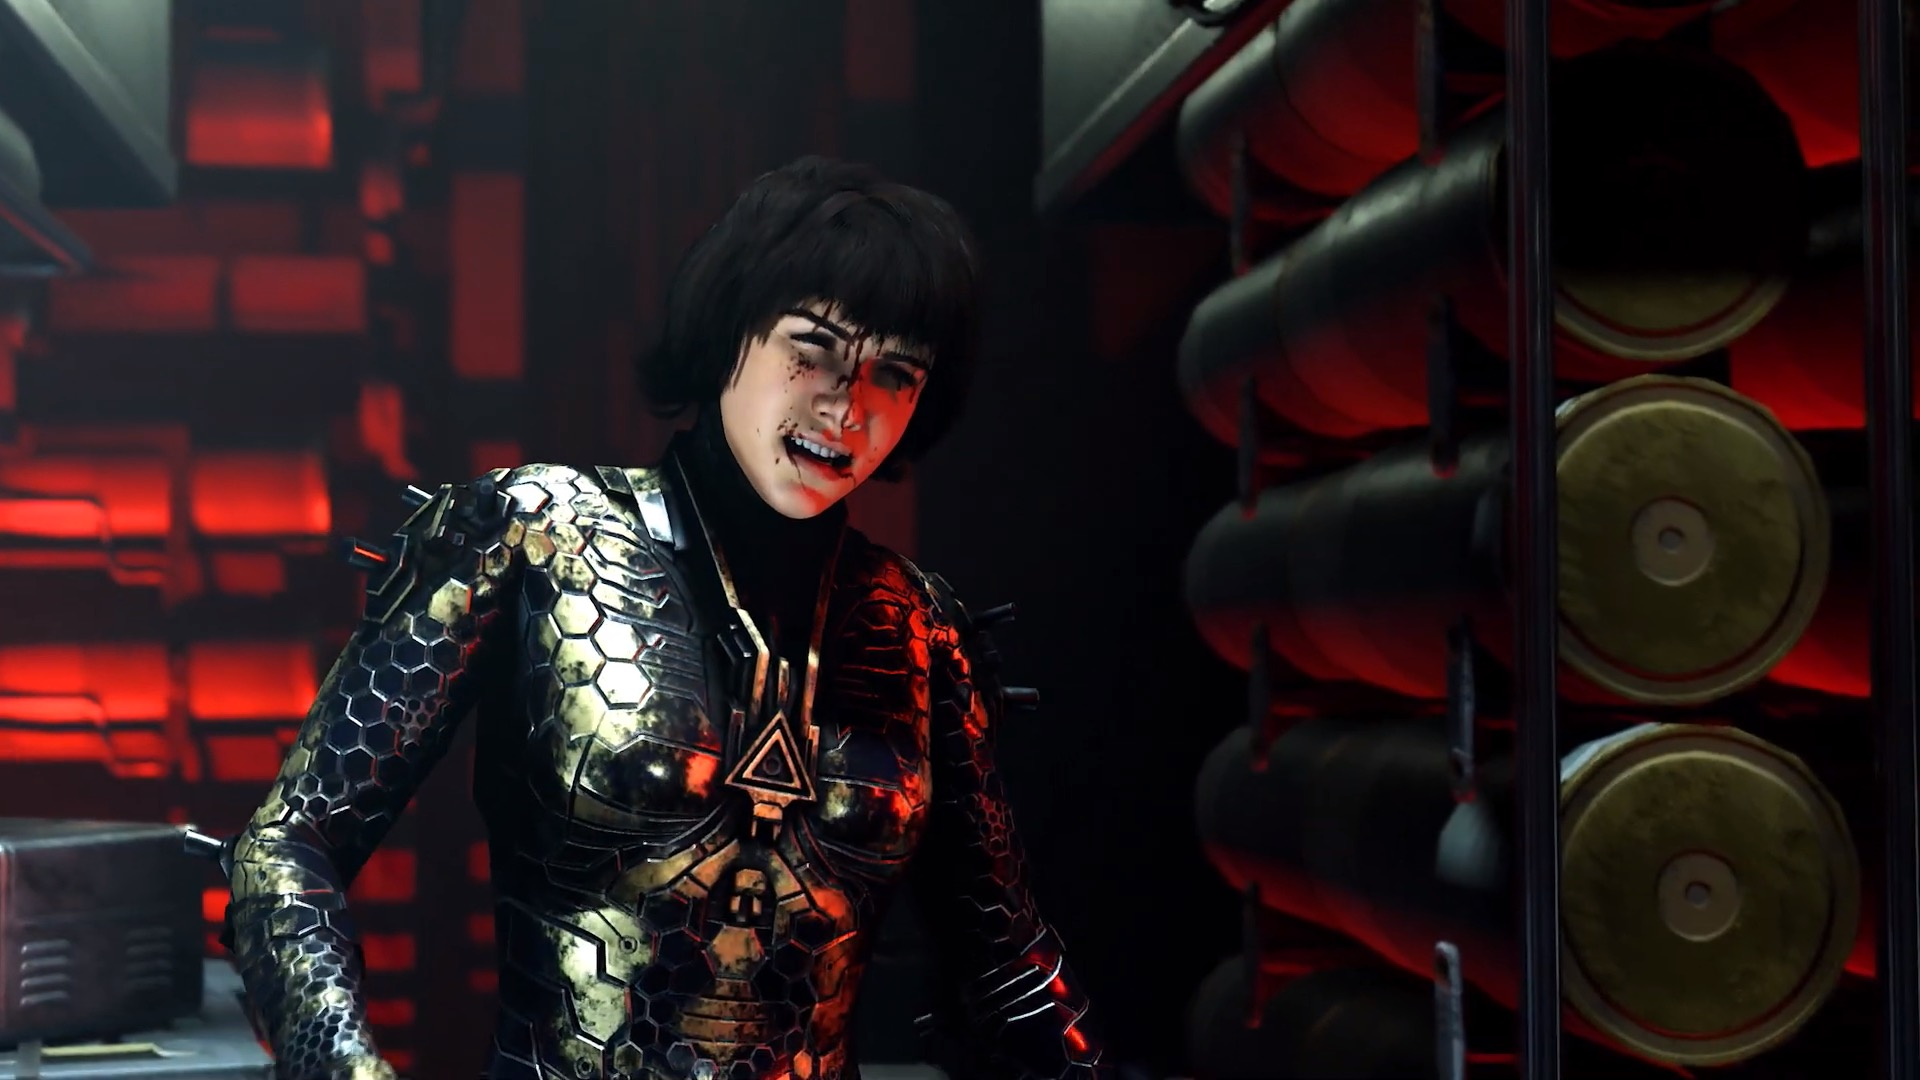 Wolfenstein Youngblood is co-op and solo and releases this